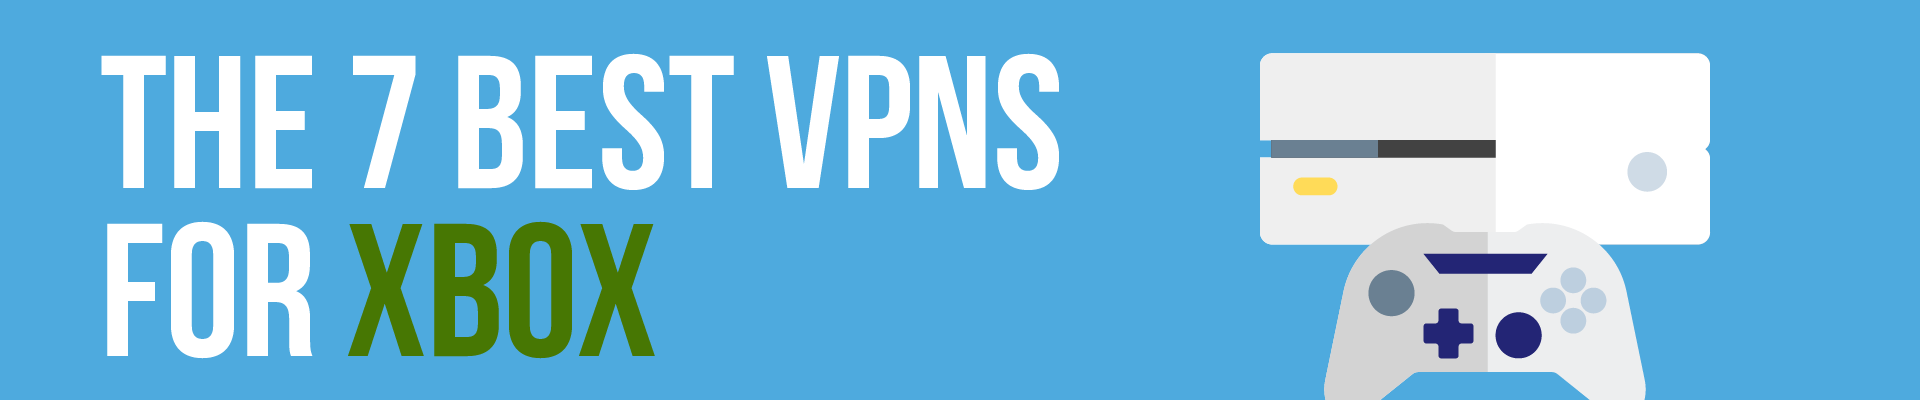 7 Best VPNs for XBox in 2019 | BestVPN org